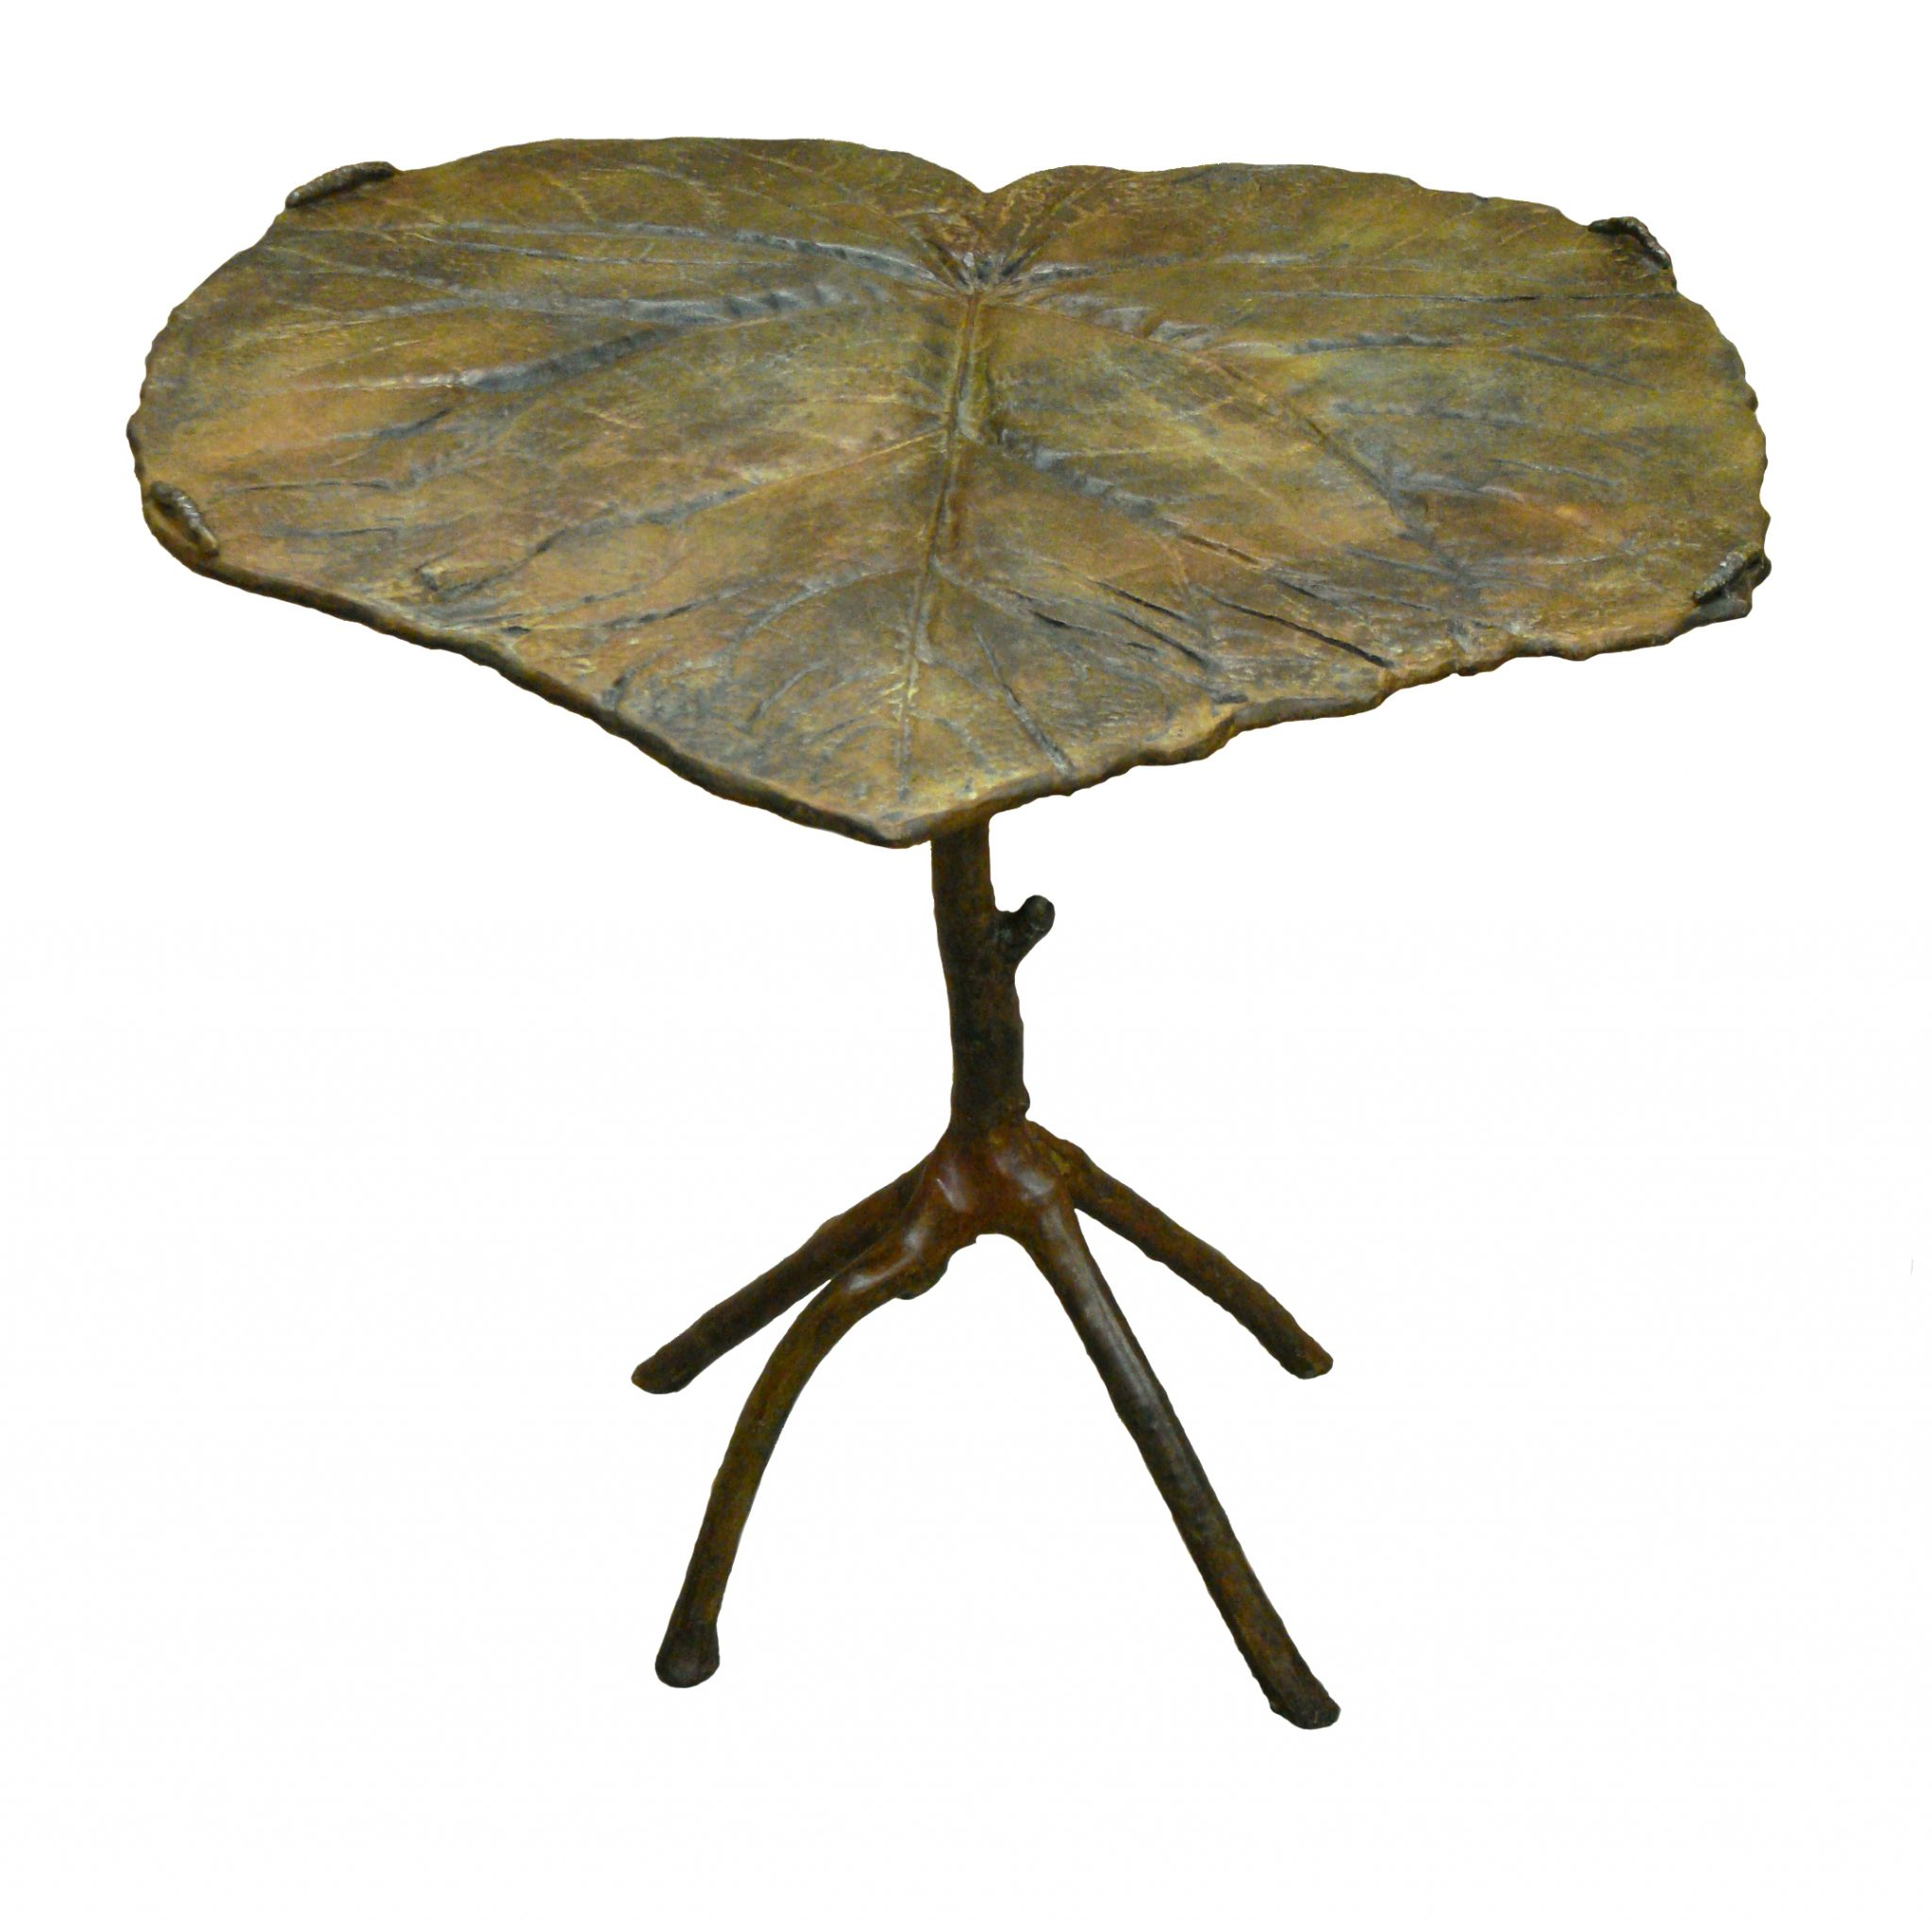 Bronze sculpture leaf table